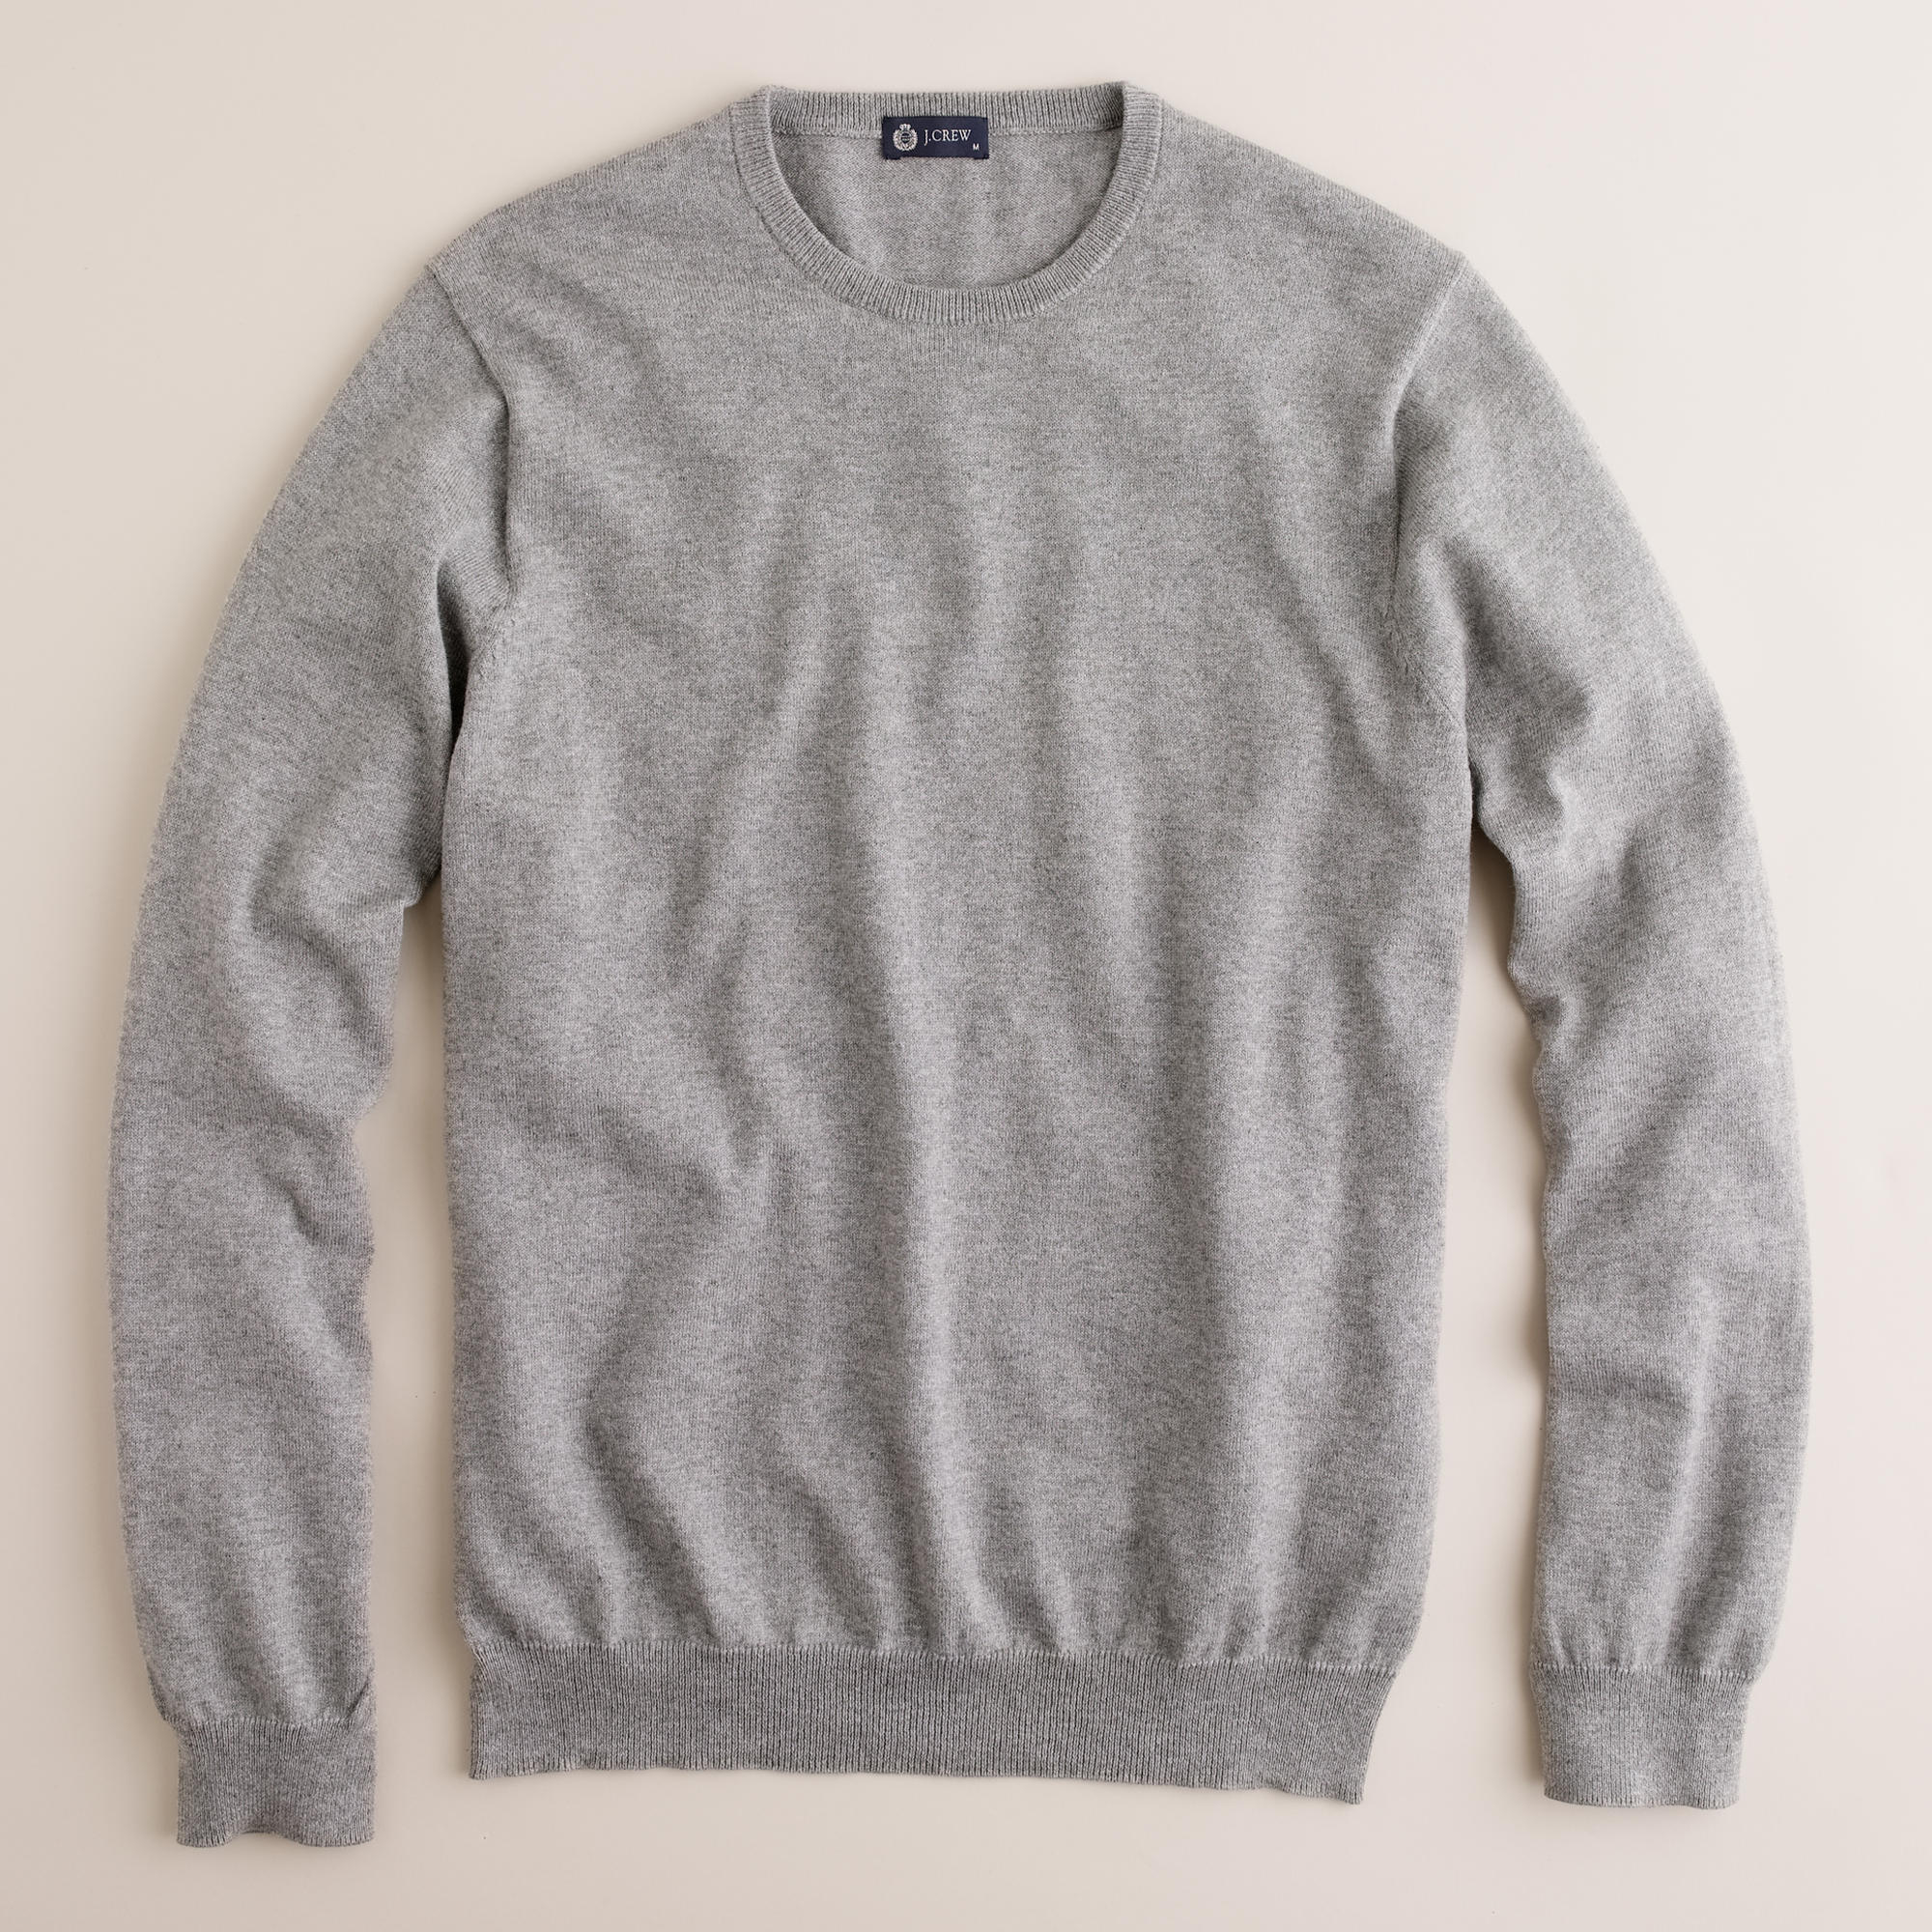 Marino Cotton Sweaters for Men - Lightweight Crewneck Men's Pullover, Enclosed in an Elegant Gift Box. by Mio Marino. $ $ 29 95 Prime. FREE Shipping on eligible orders. Some sizes/colors are Prime eligible. out of 5 stars